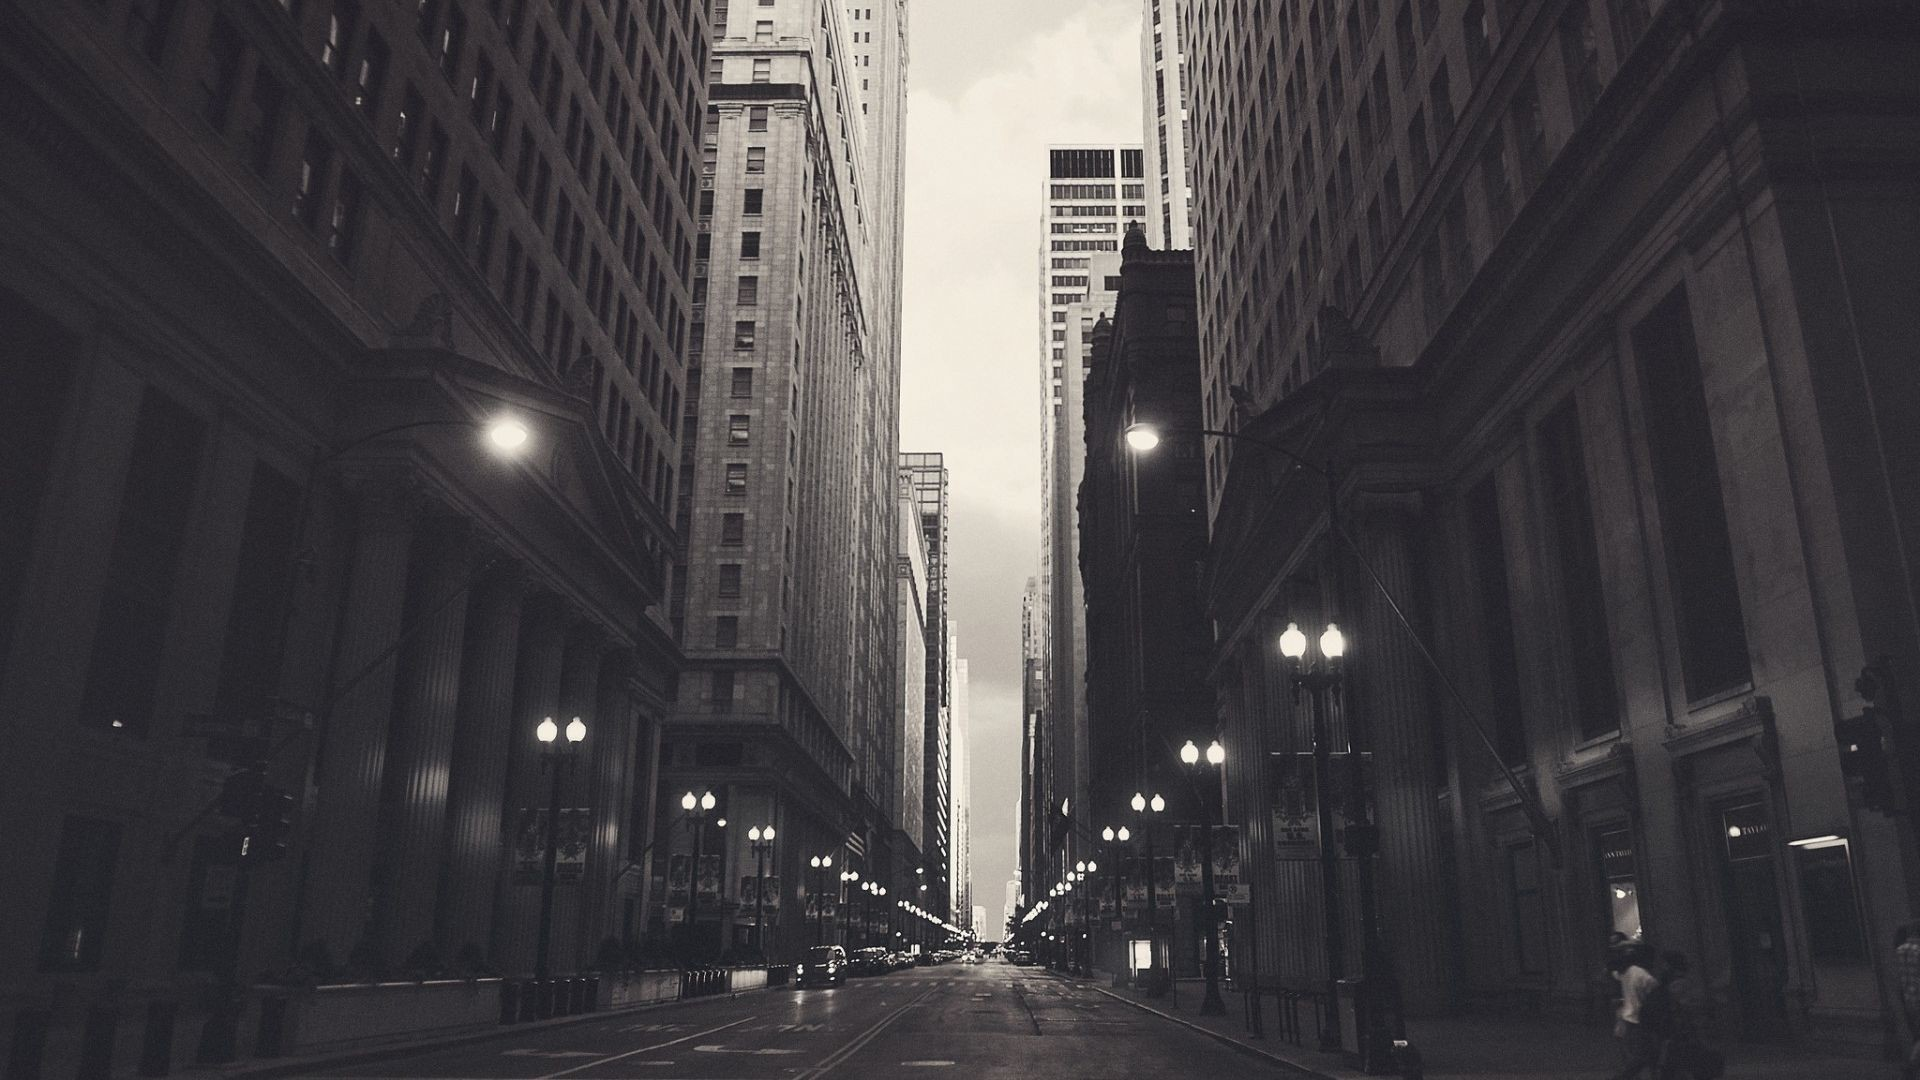 1920x1080 Chicago City Monochrome HD Wallpaper. « »